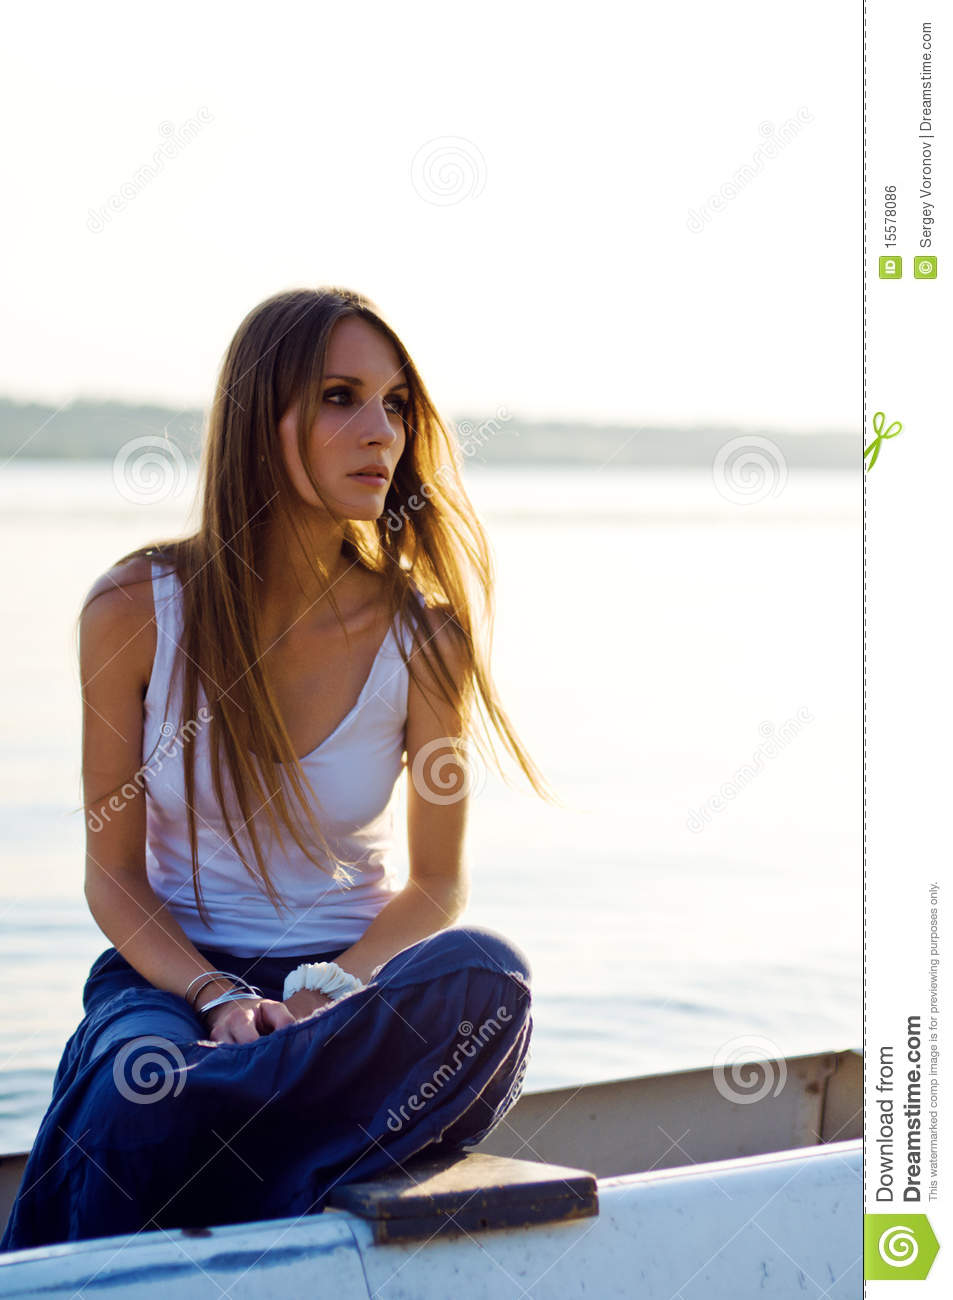 Beautiful Woman Relaxing In The Boat Royalty Free Stock Image - Image: 15578086